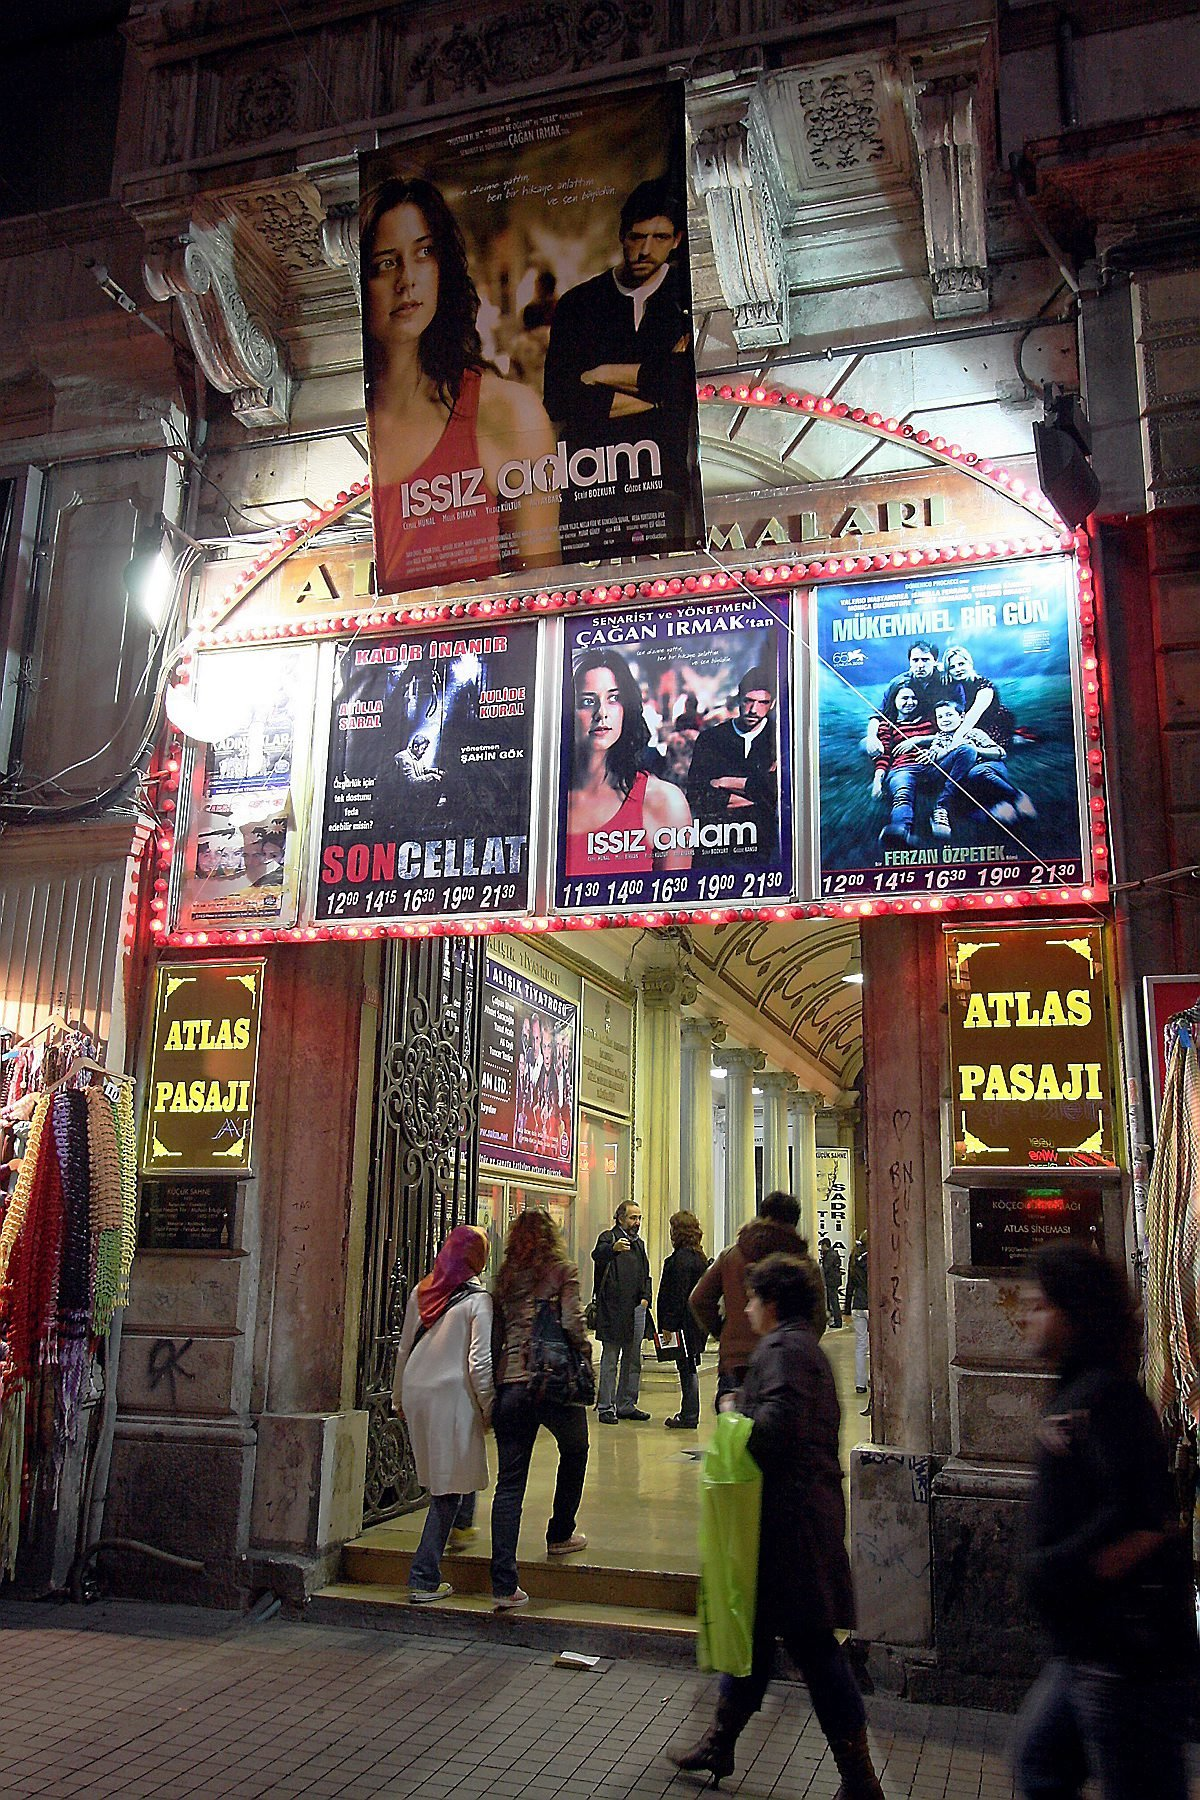 This file photo shows the entrance of Atlas Passage, which houses the movie theater bearing the same name, on Nov. 16, 2008. The banner belongs to the 2008 movie